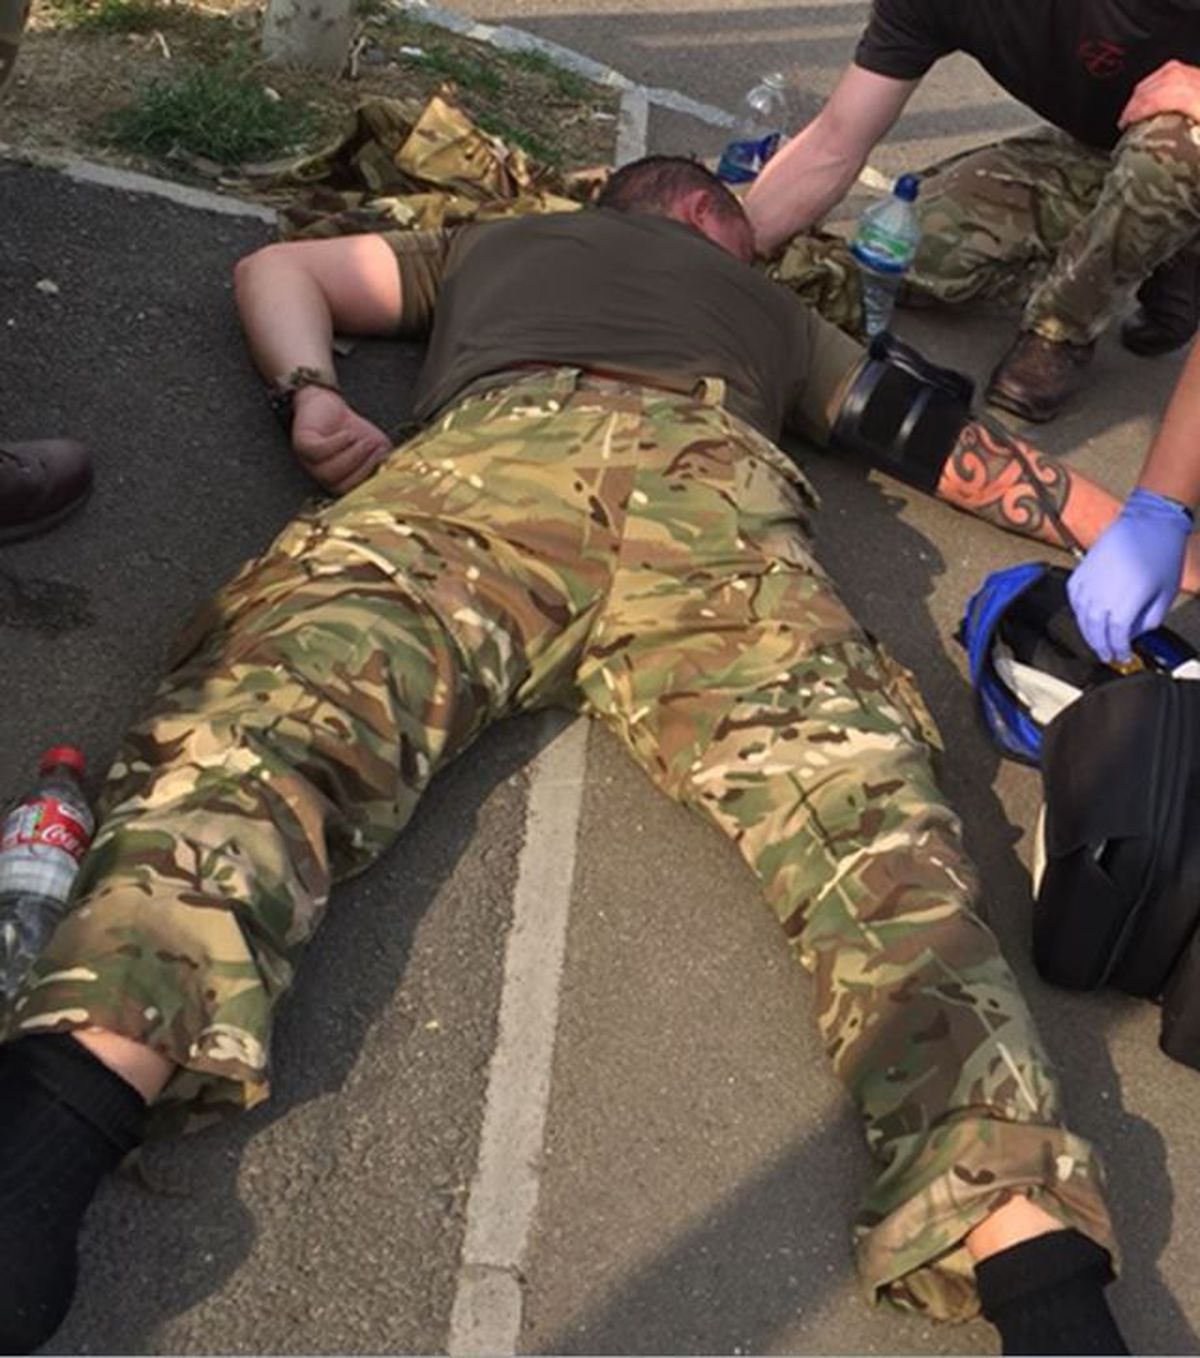 Former soldier David Glanville can be seen on the ground after becoming ill while training